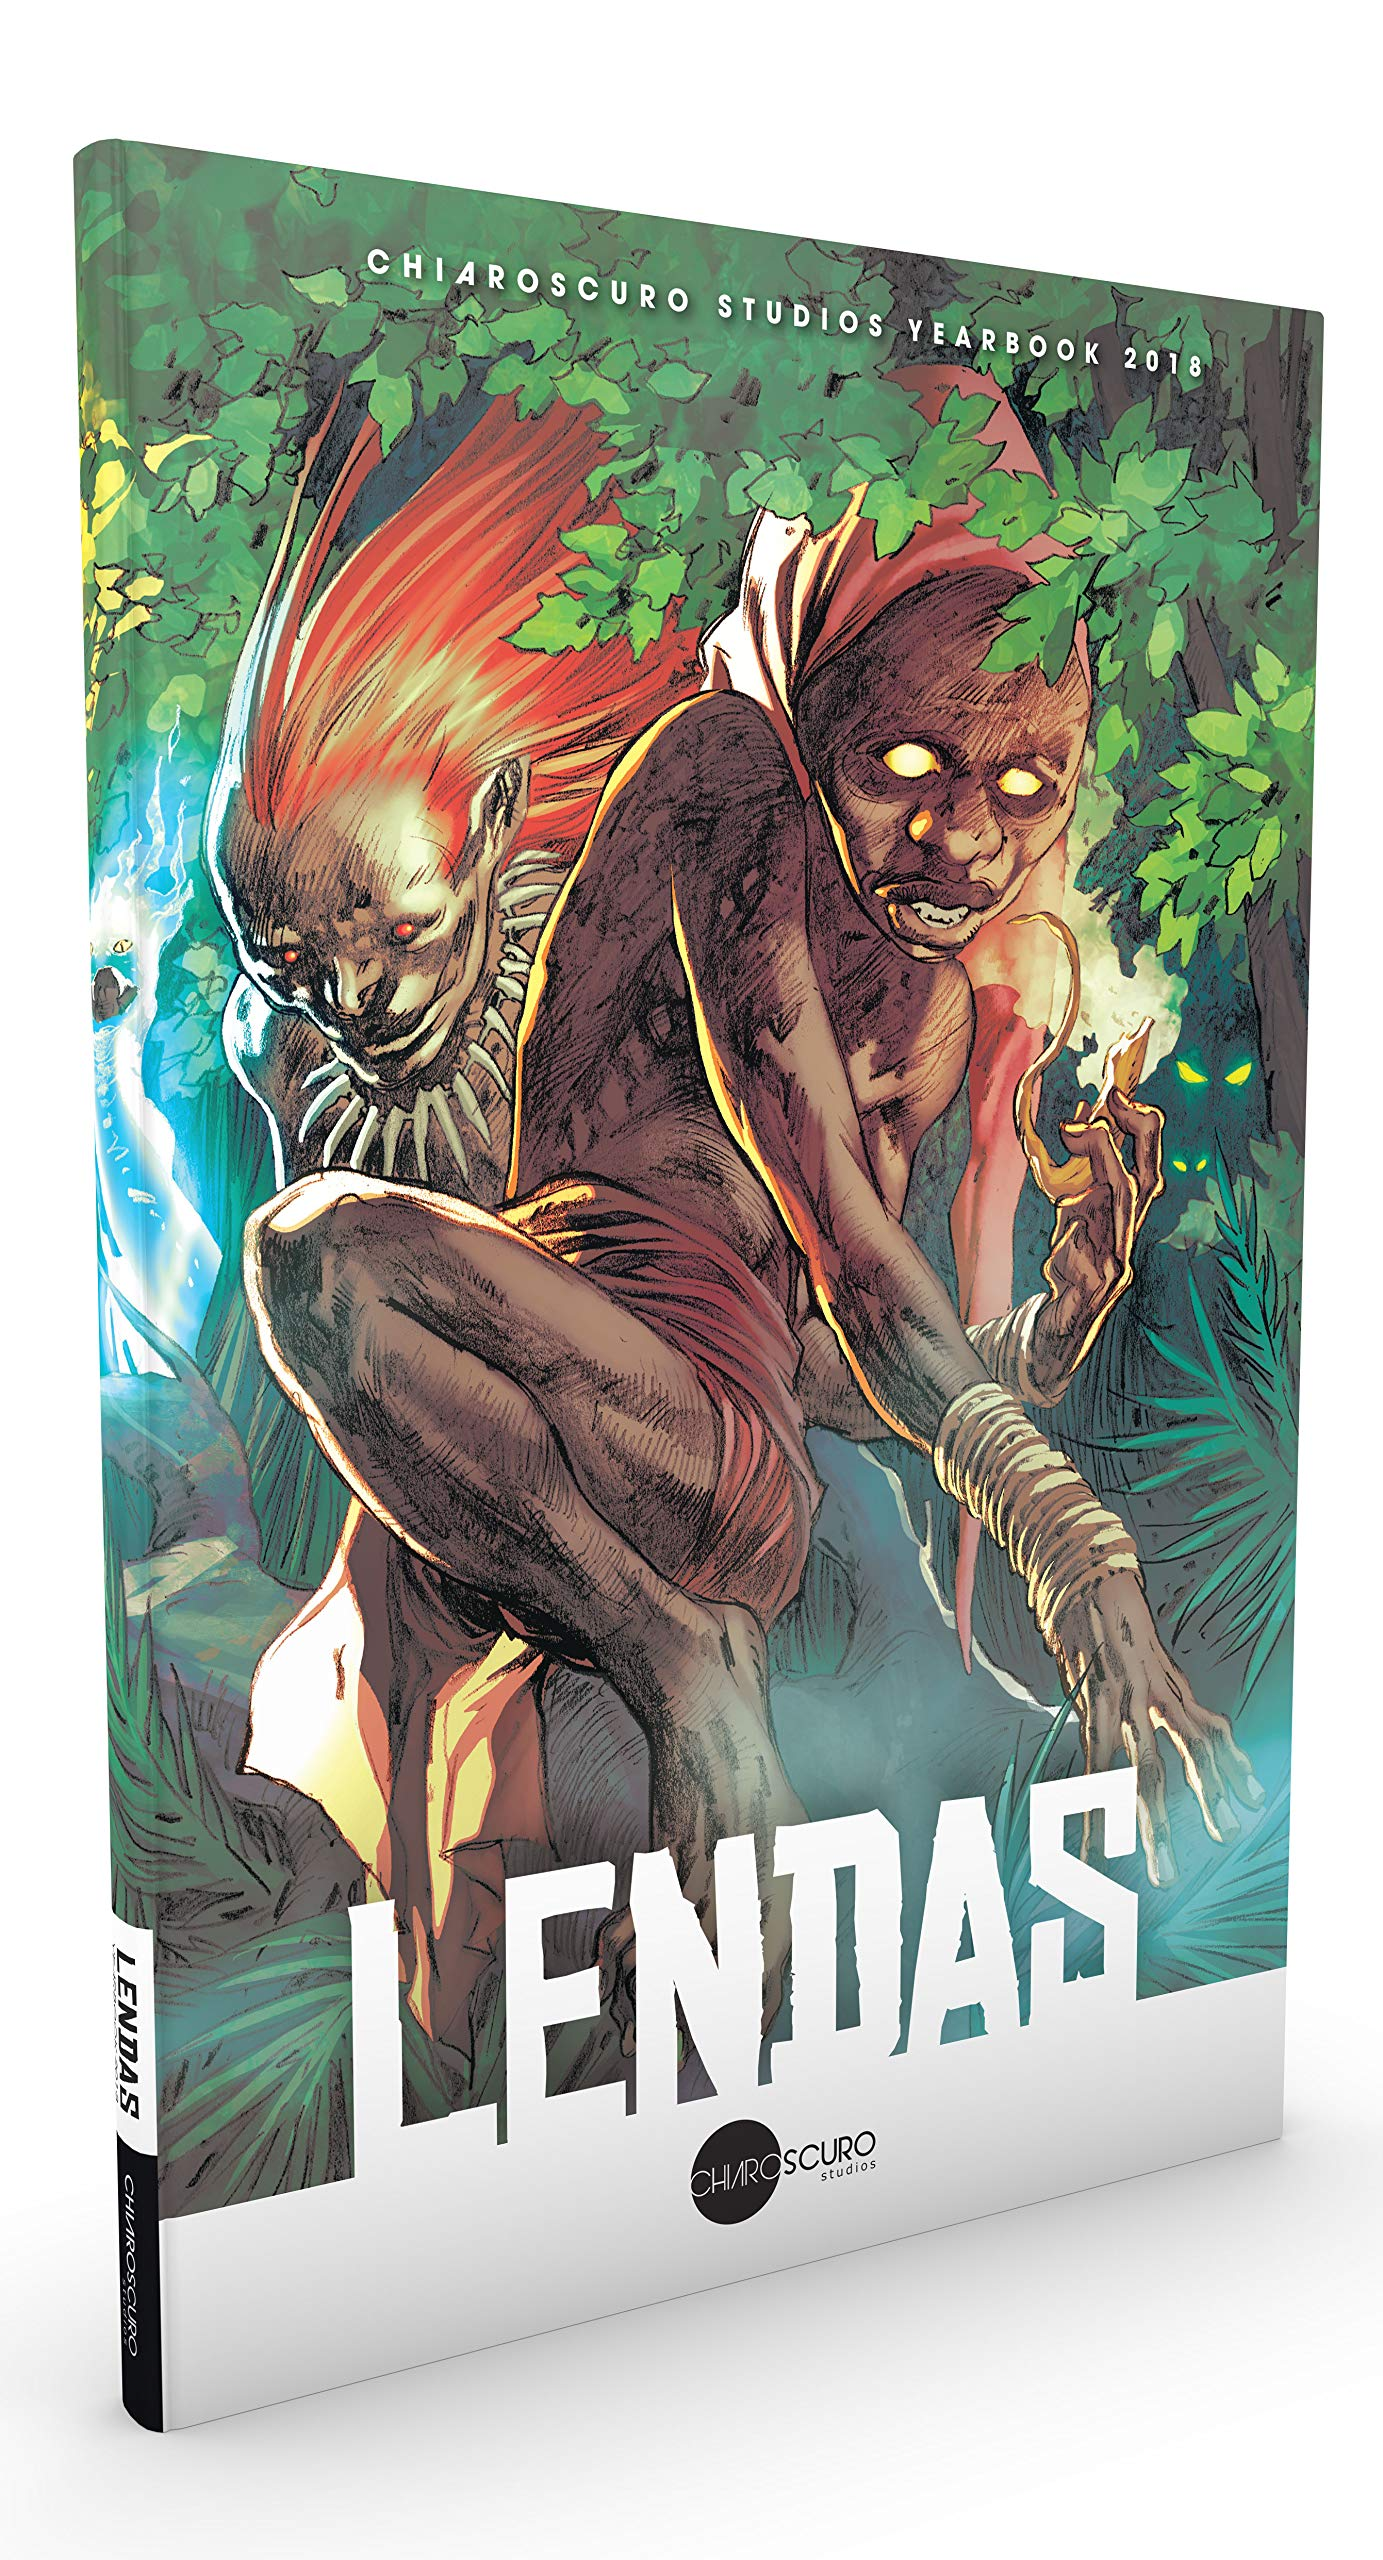 Lendas. Chiaroscuro Studios Yearbook 2018 (Em Portugues do Brasil): Yuri Andrey e Ivan Reis: 9788594284013: Amazon.com: Books